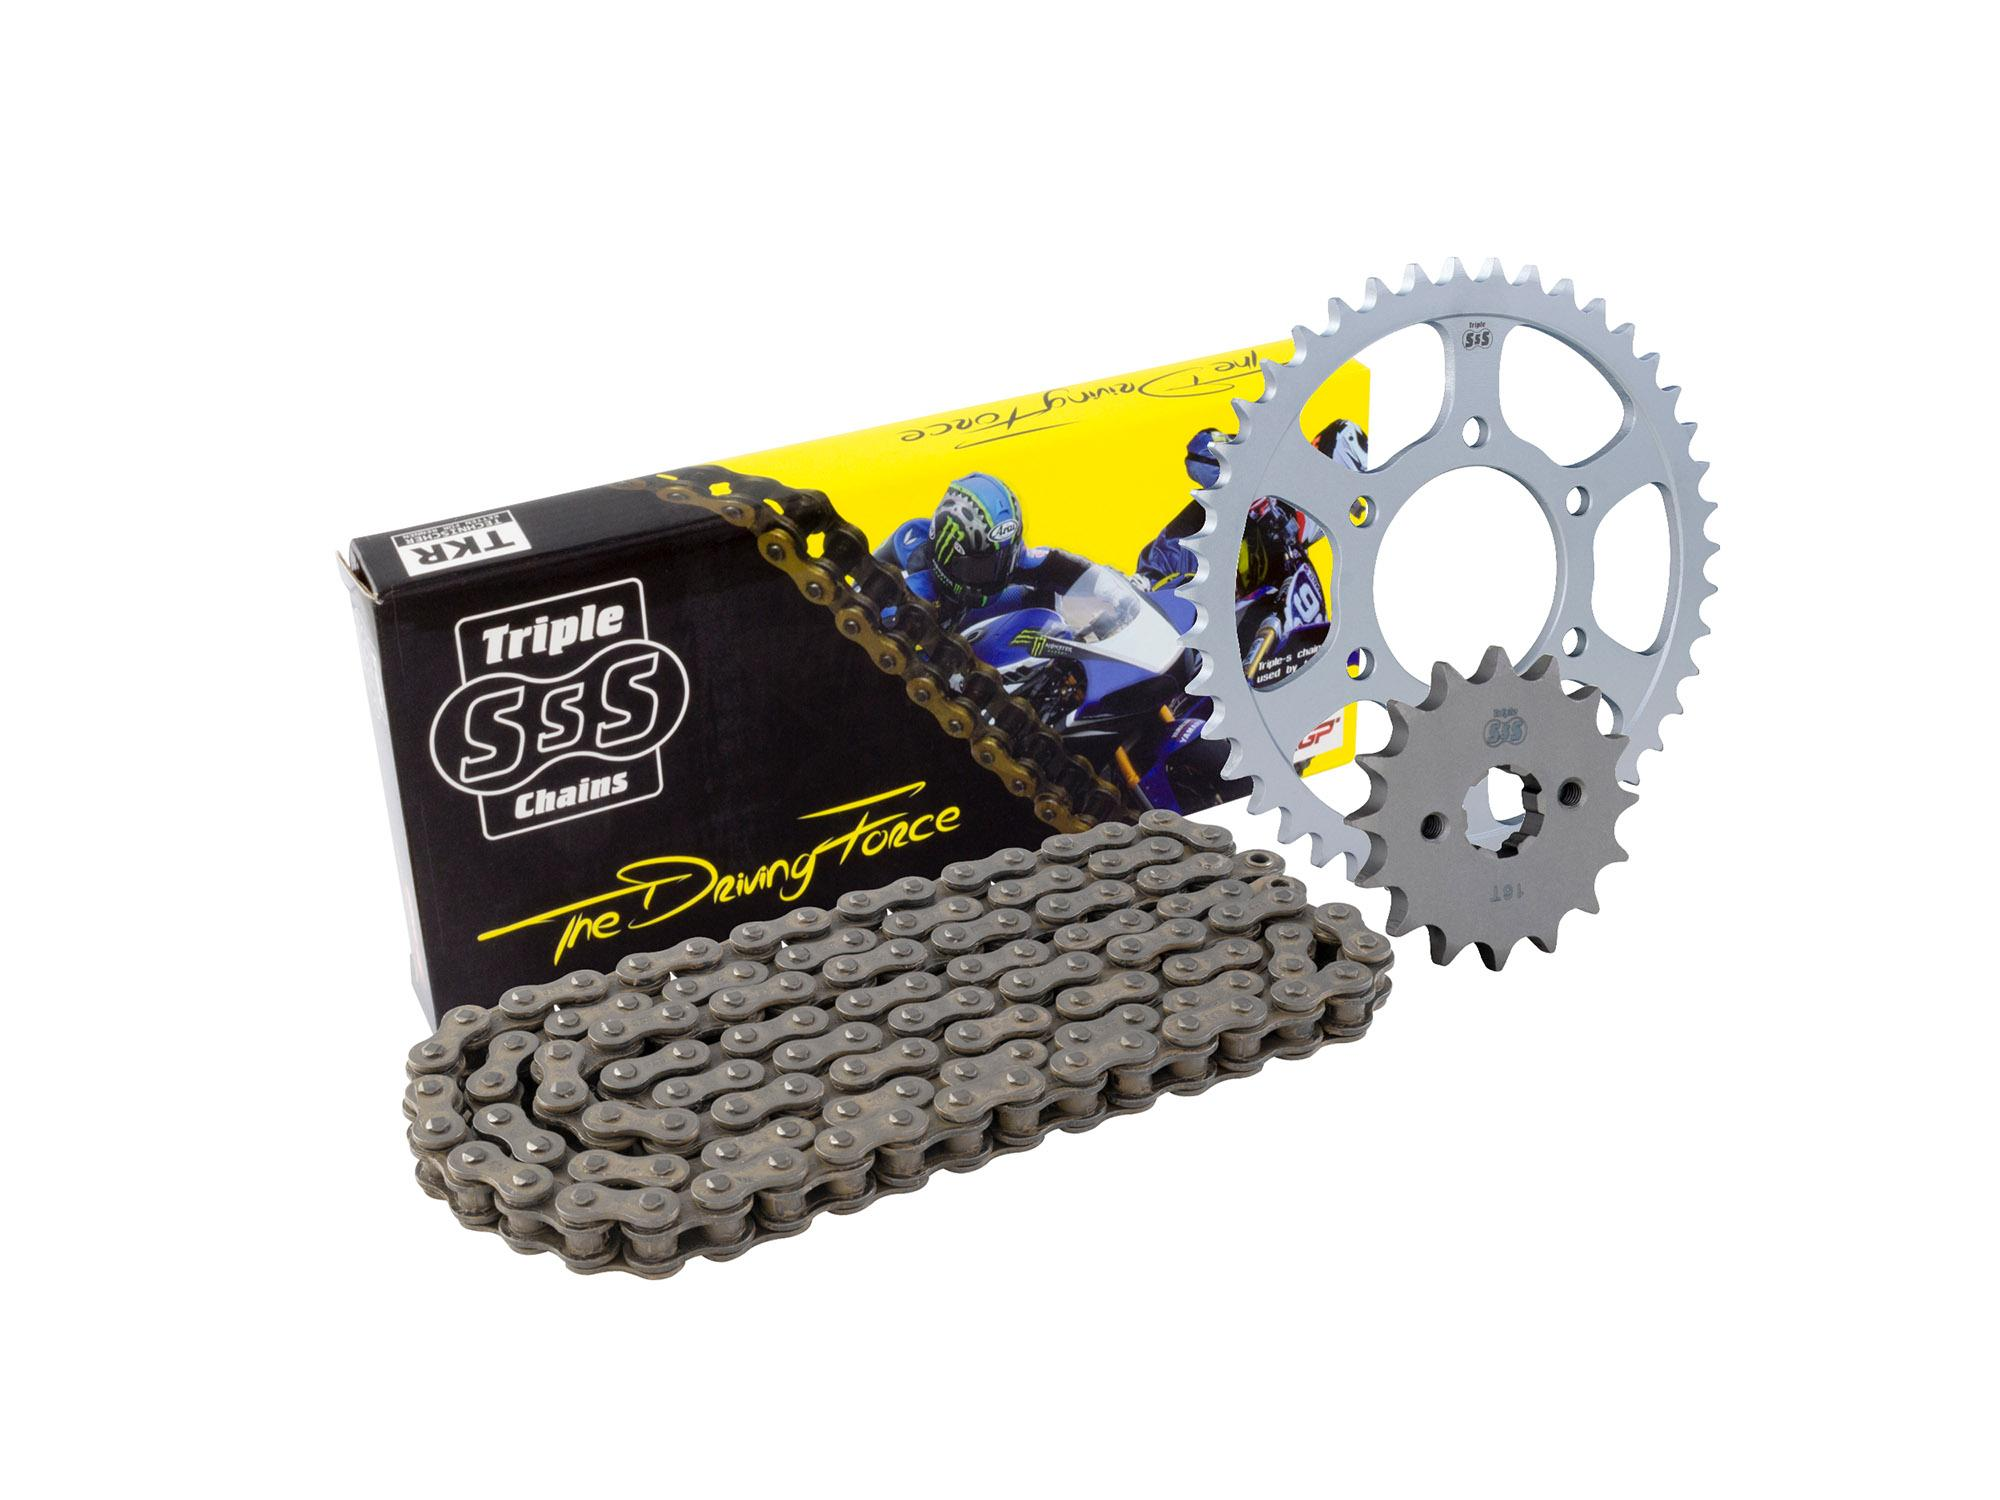 Aprilia 250 RS 95-04 Chain & Sprocket Kit: 14T Front, 42T Rear, HD O-Ring Black Chain 520H 110Link